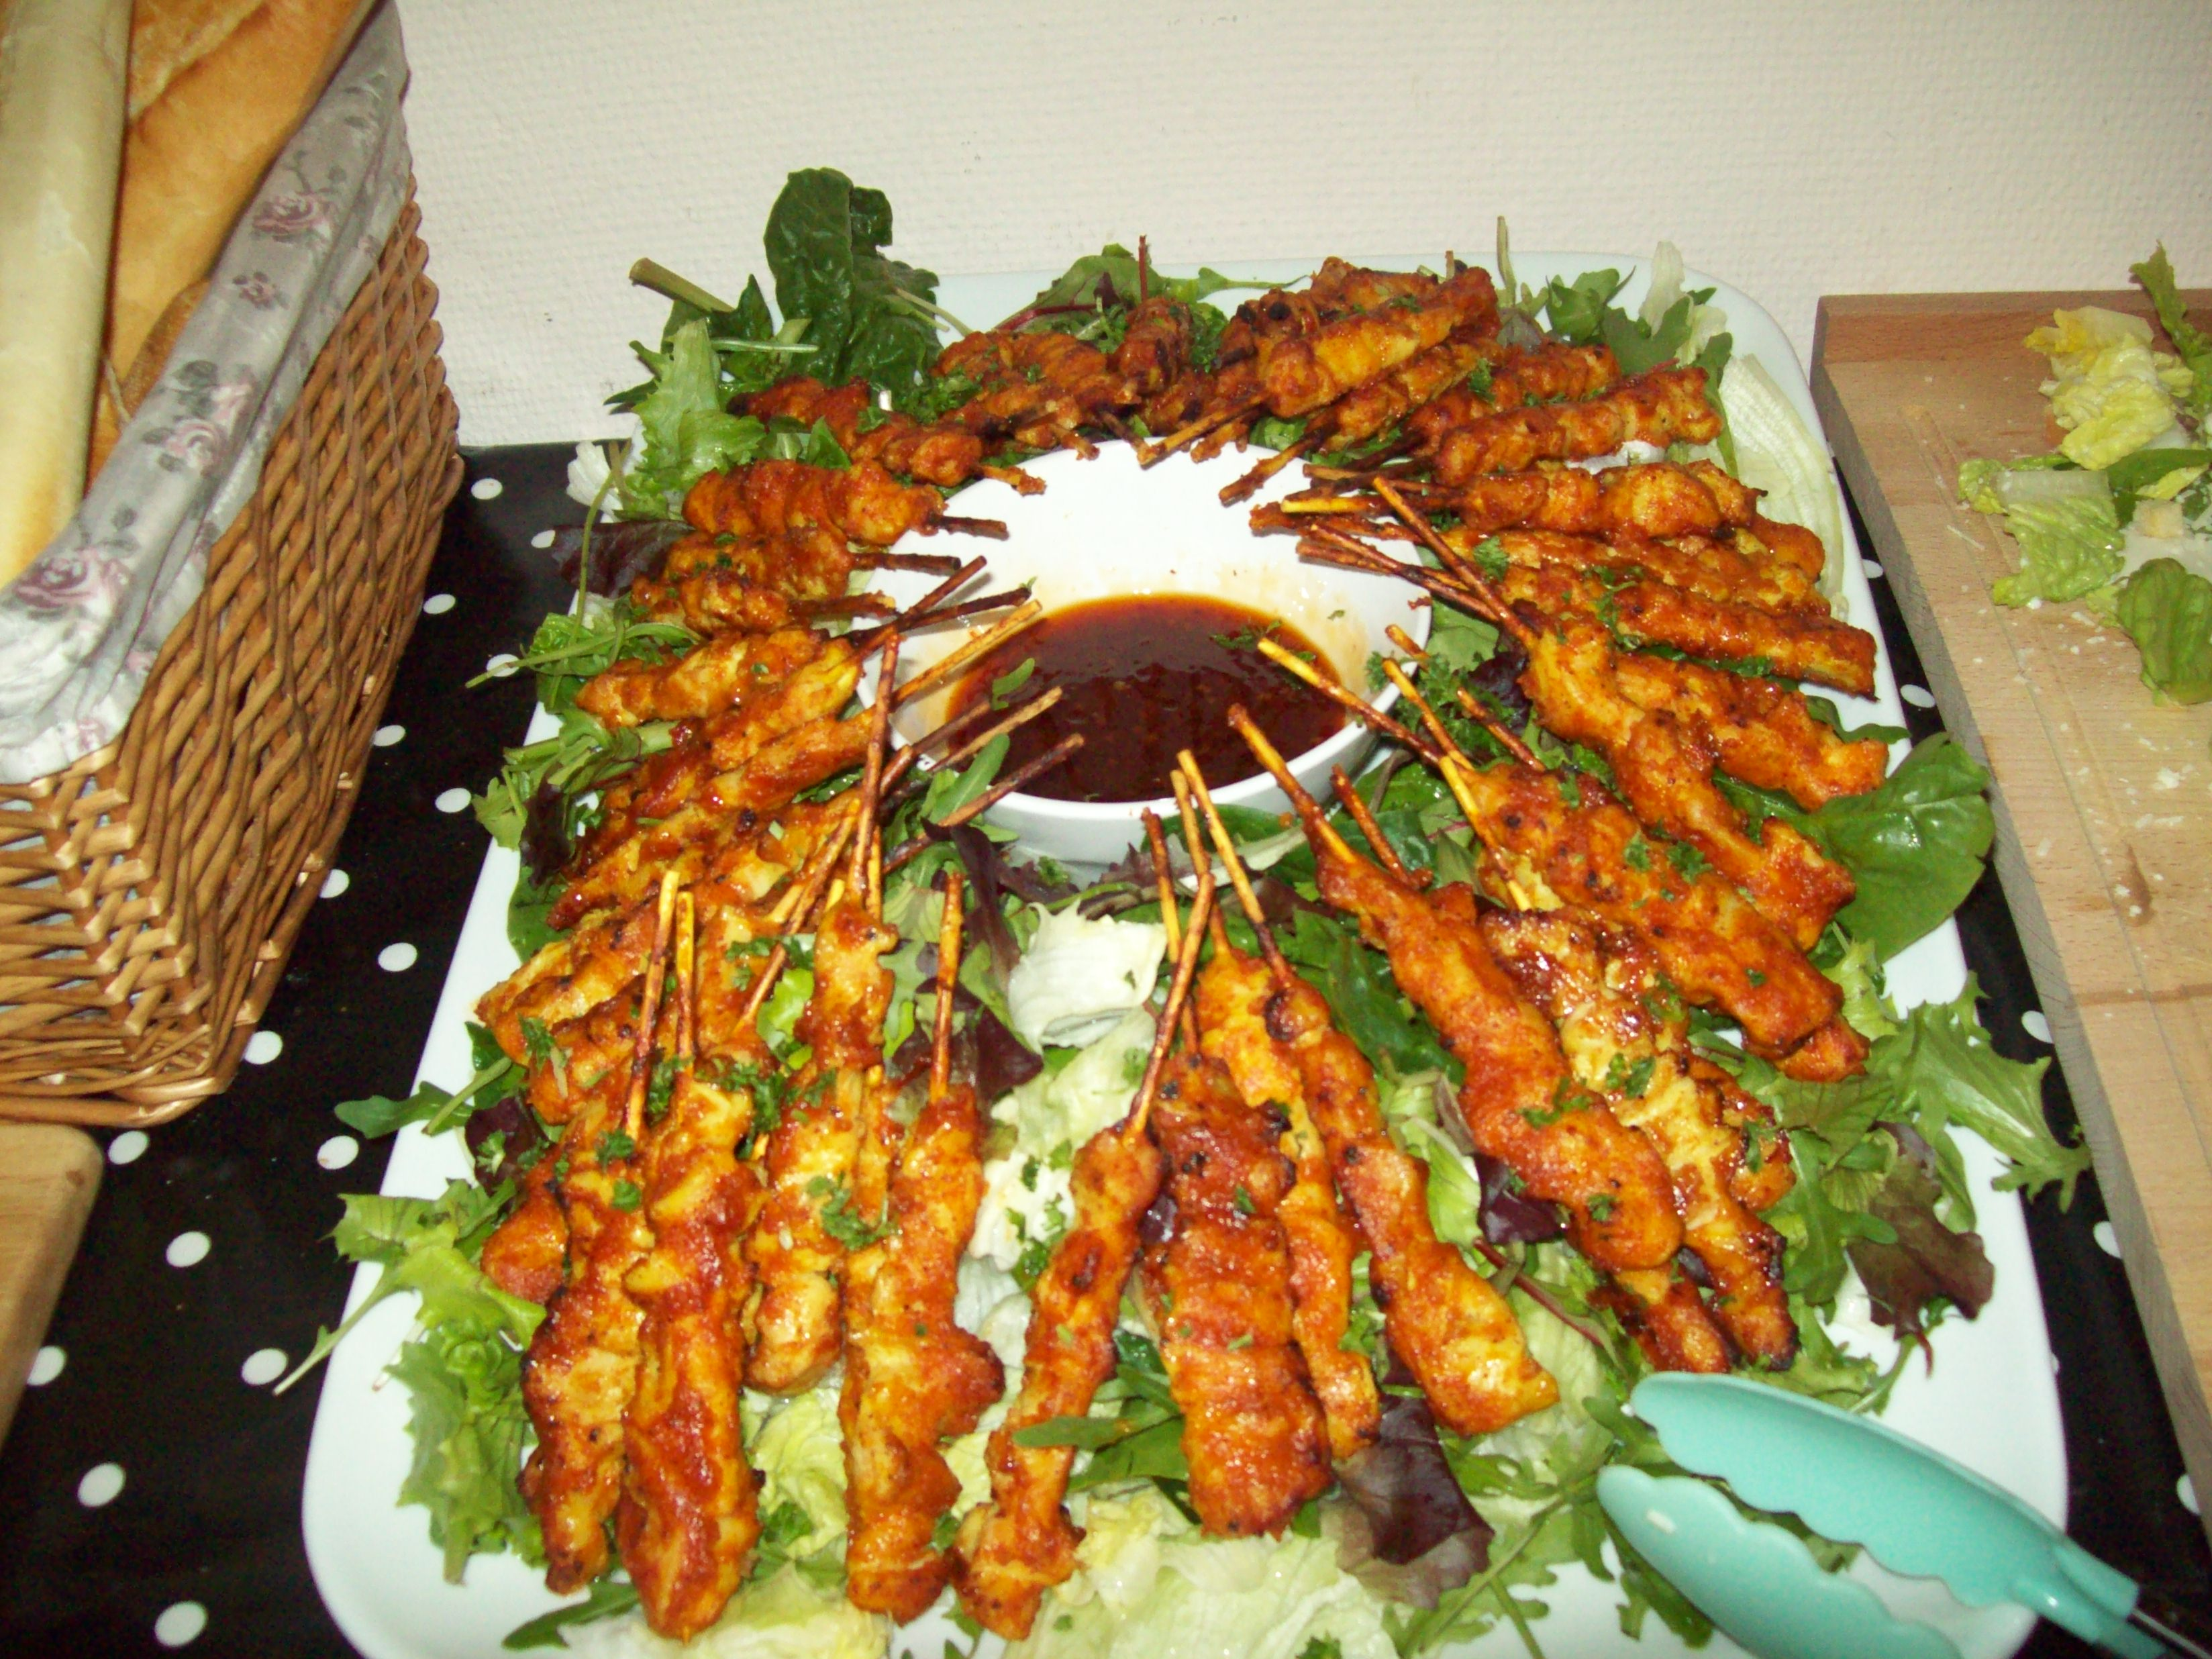 Chicken satay salad with dip